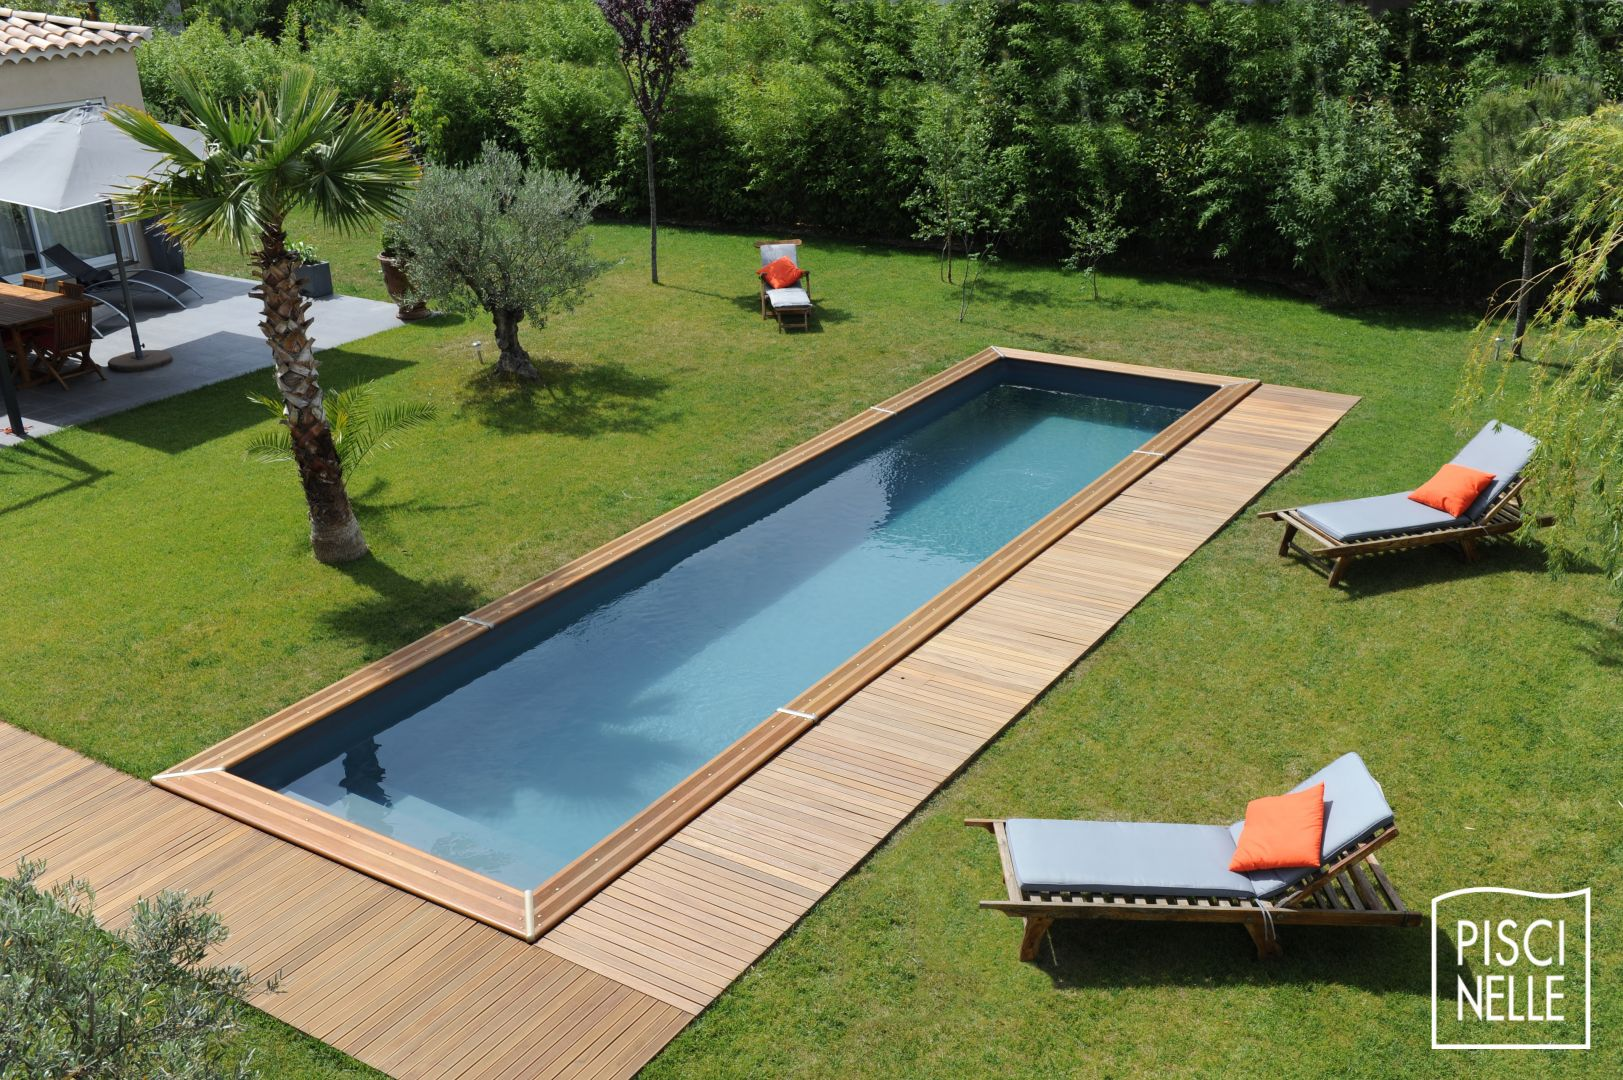 piscine semi enterree bois prix. Black Bedroom Furniture Sets. Home Design Ideas